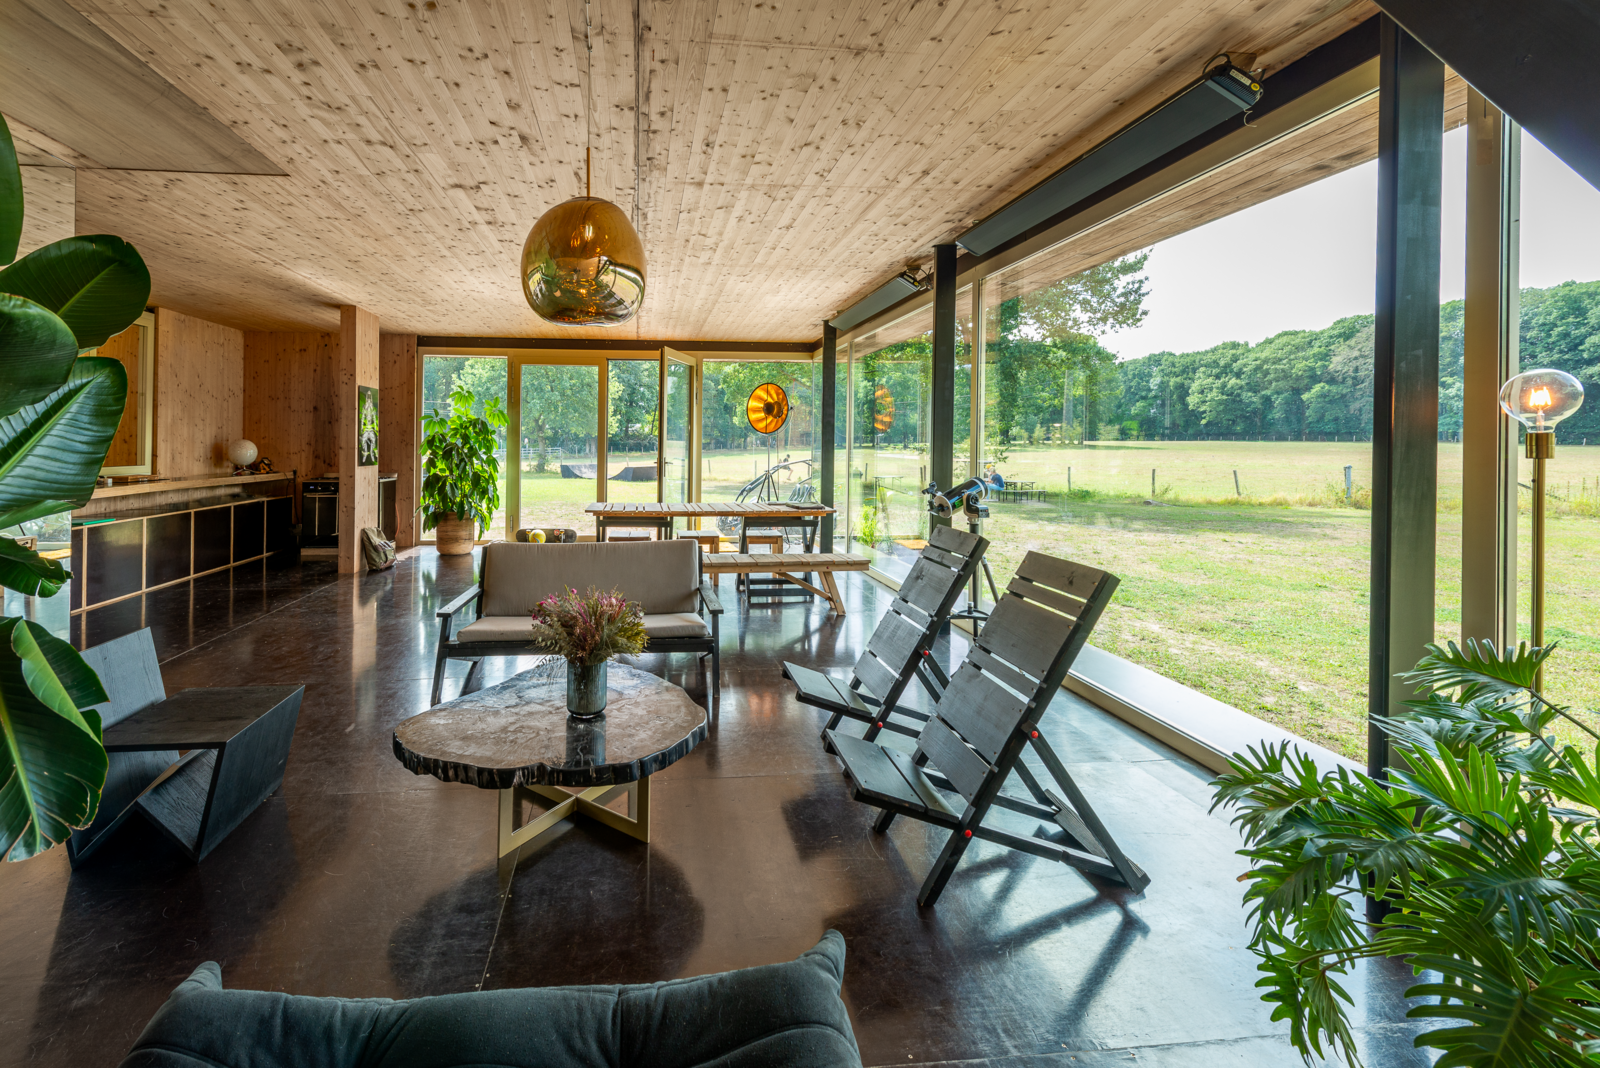 The Chairhouse (Villa Tellier) by ABN Architecten living area with floor-to-ceiling windows